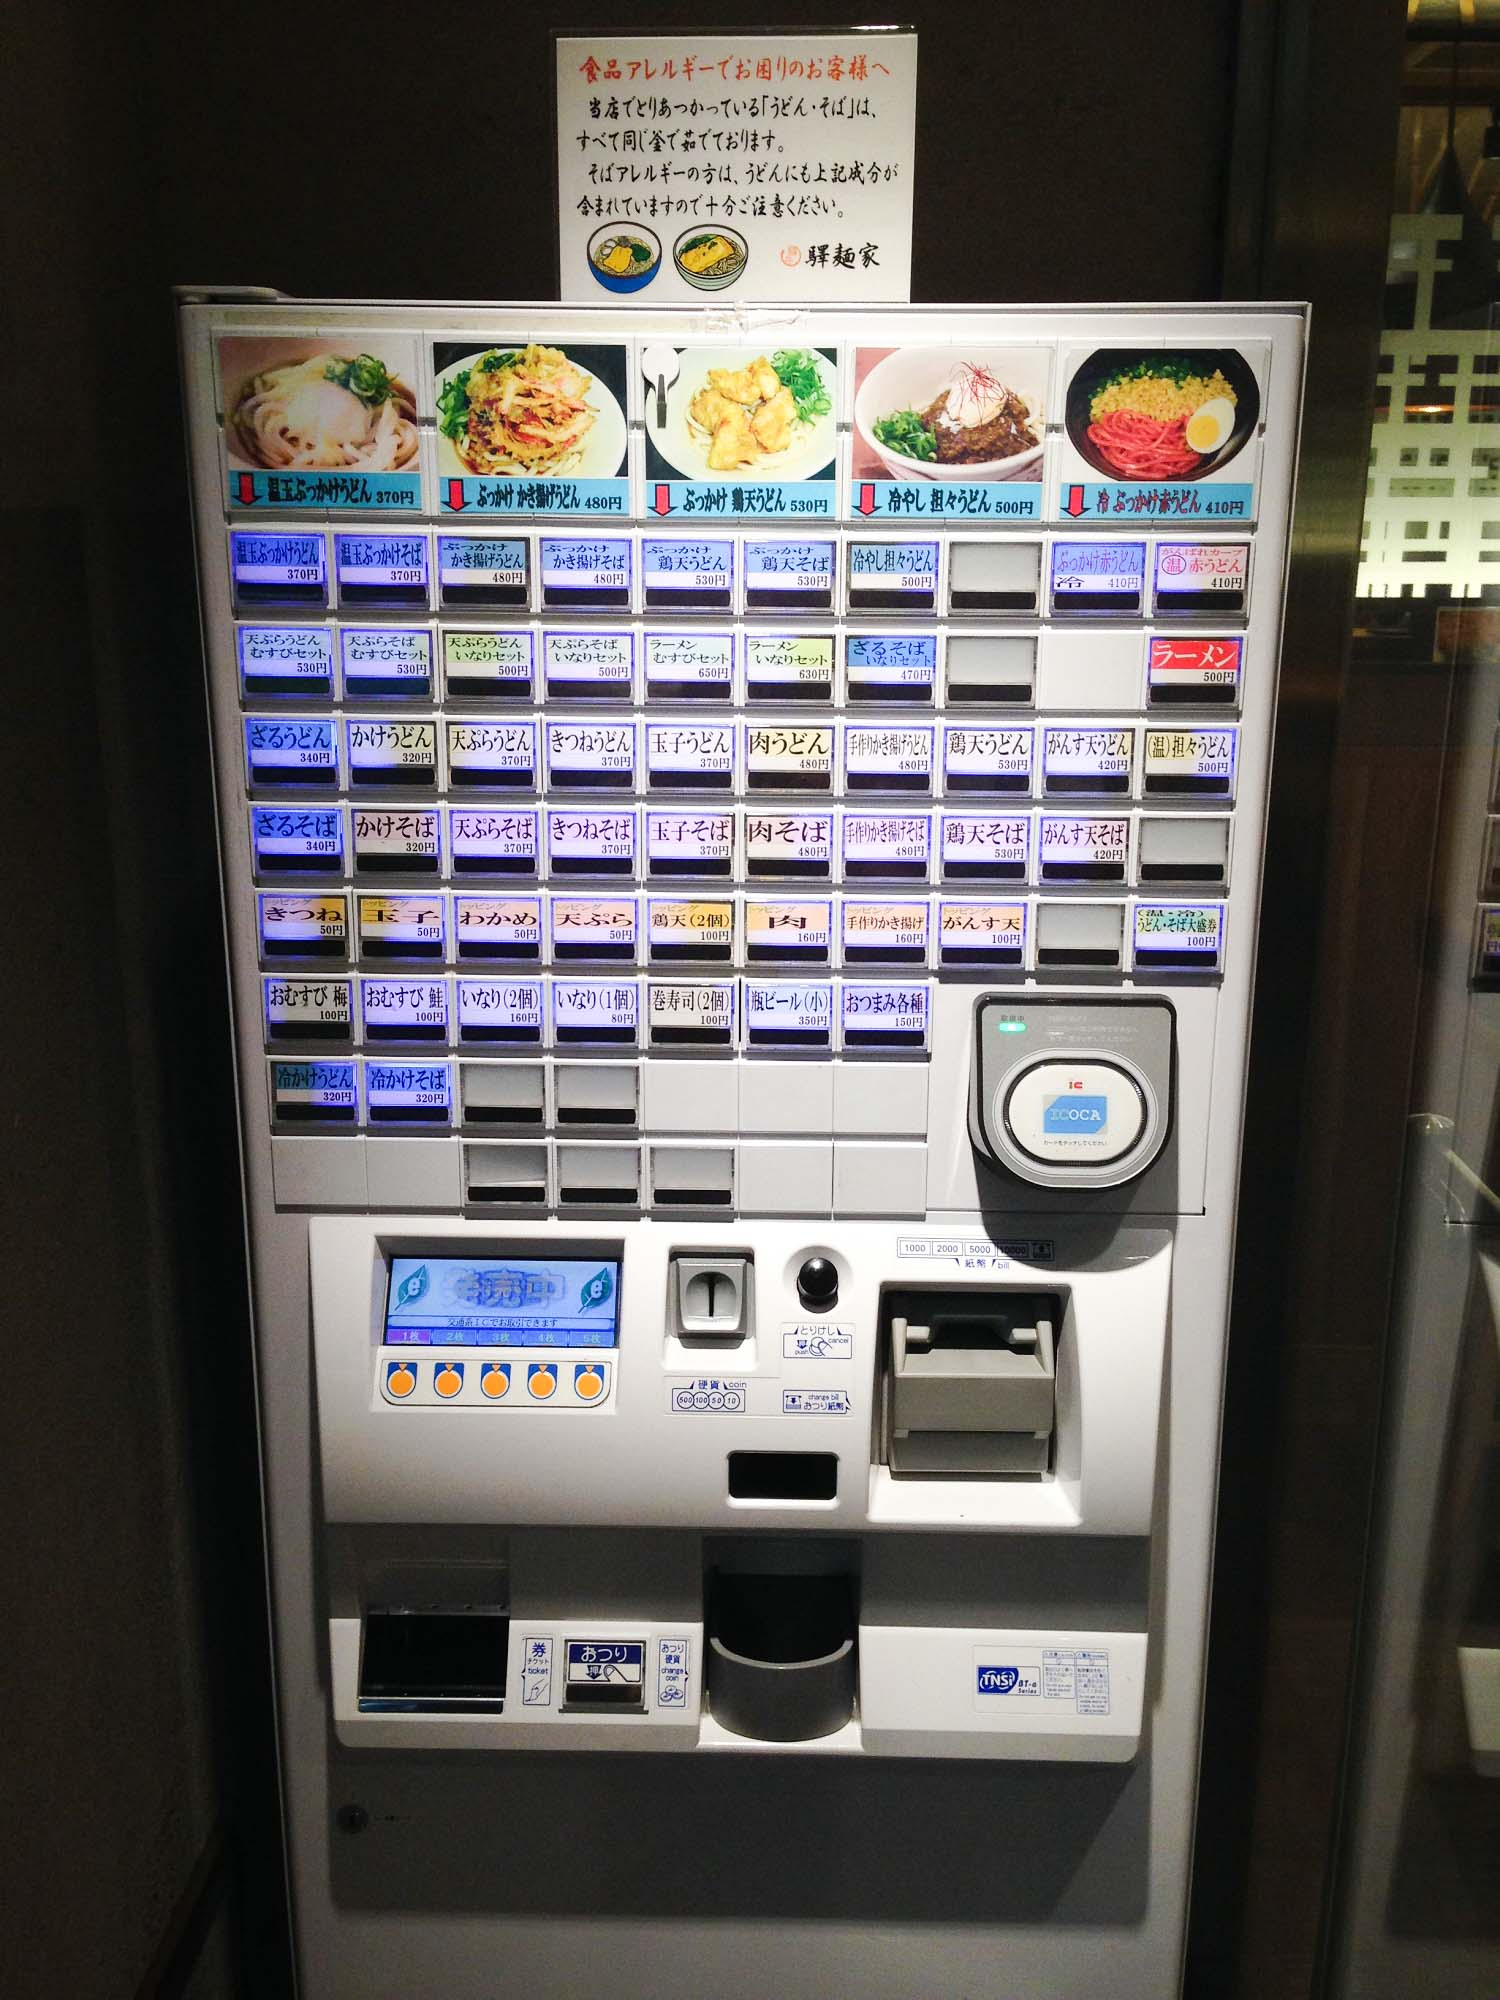 Vending machine with Japanese food.